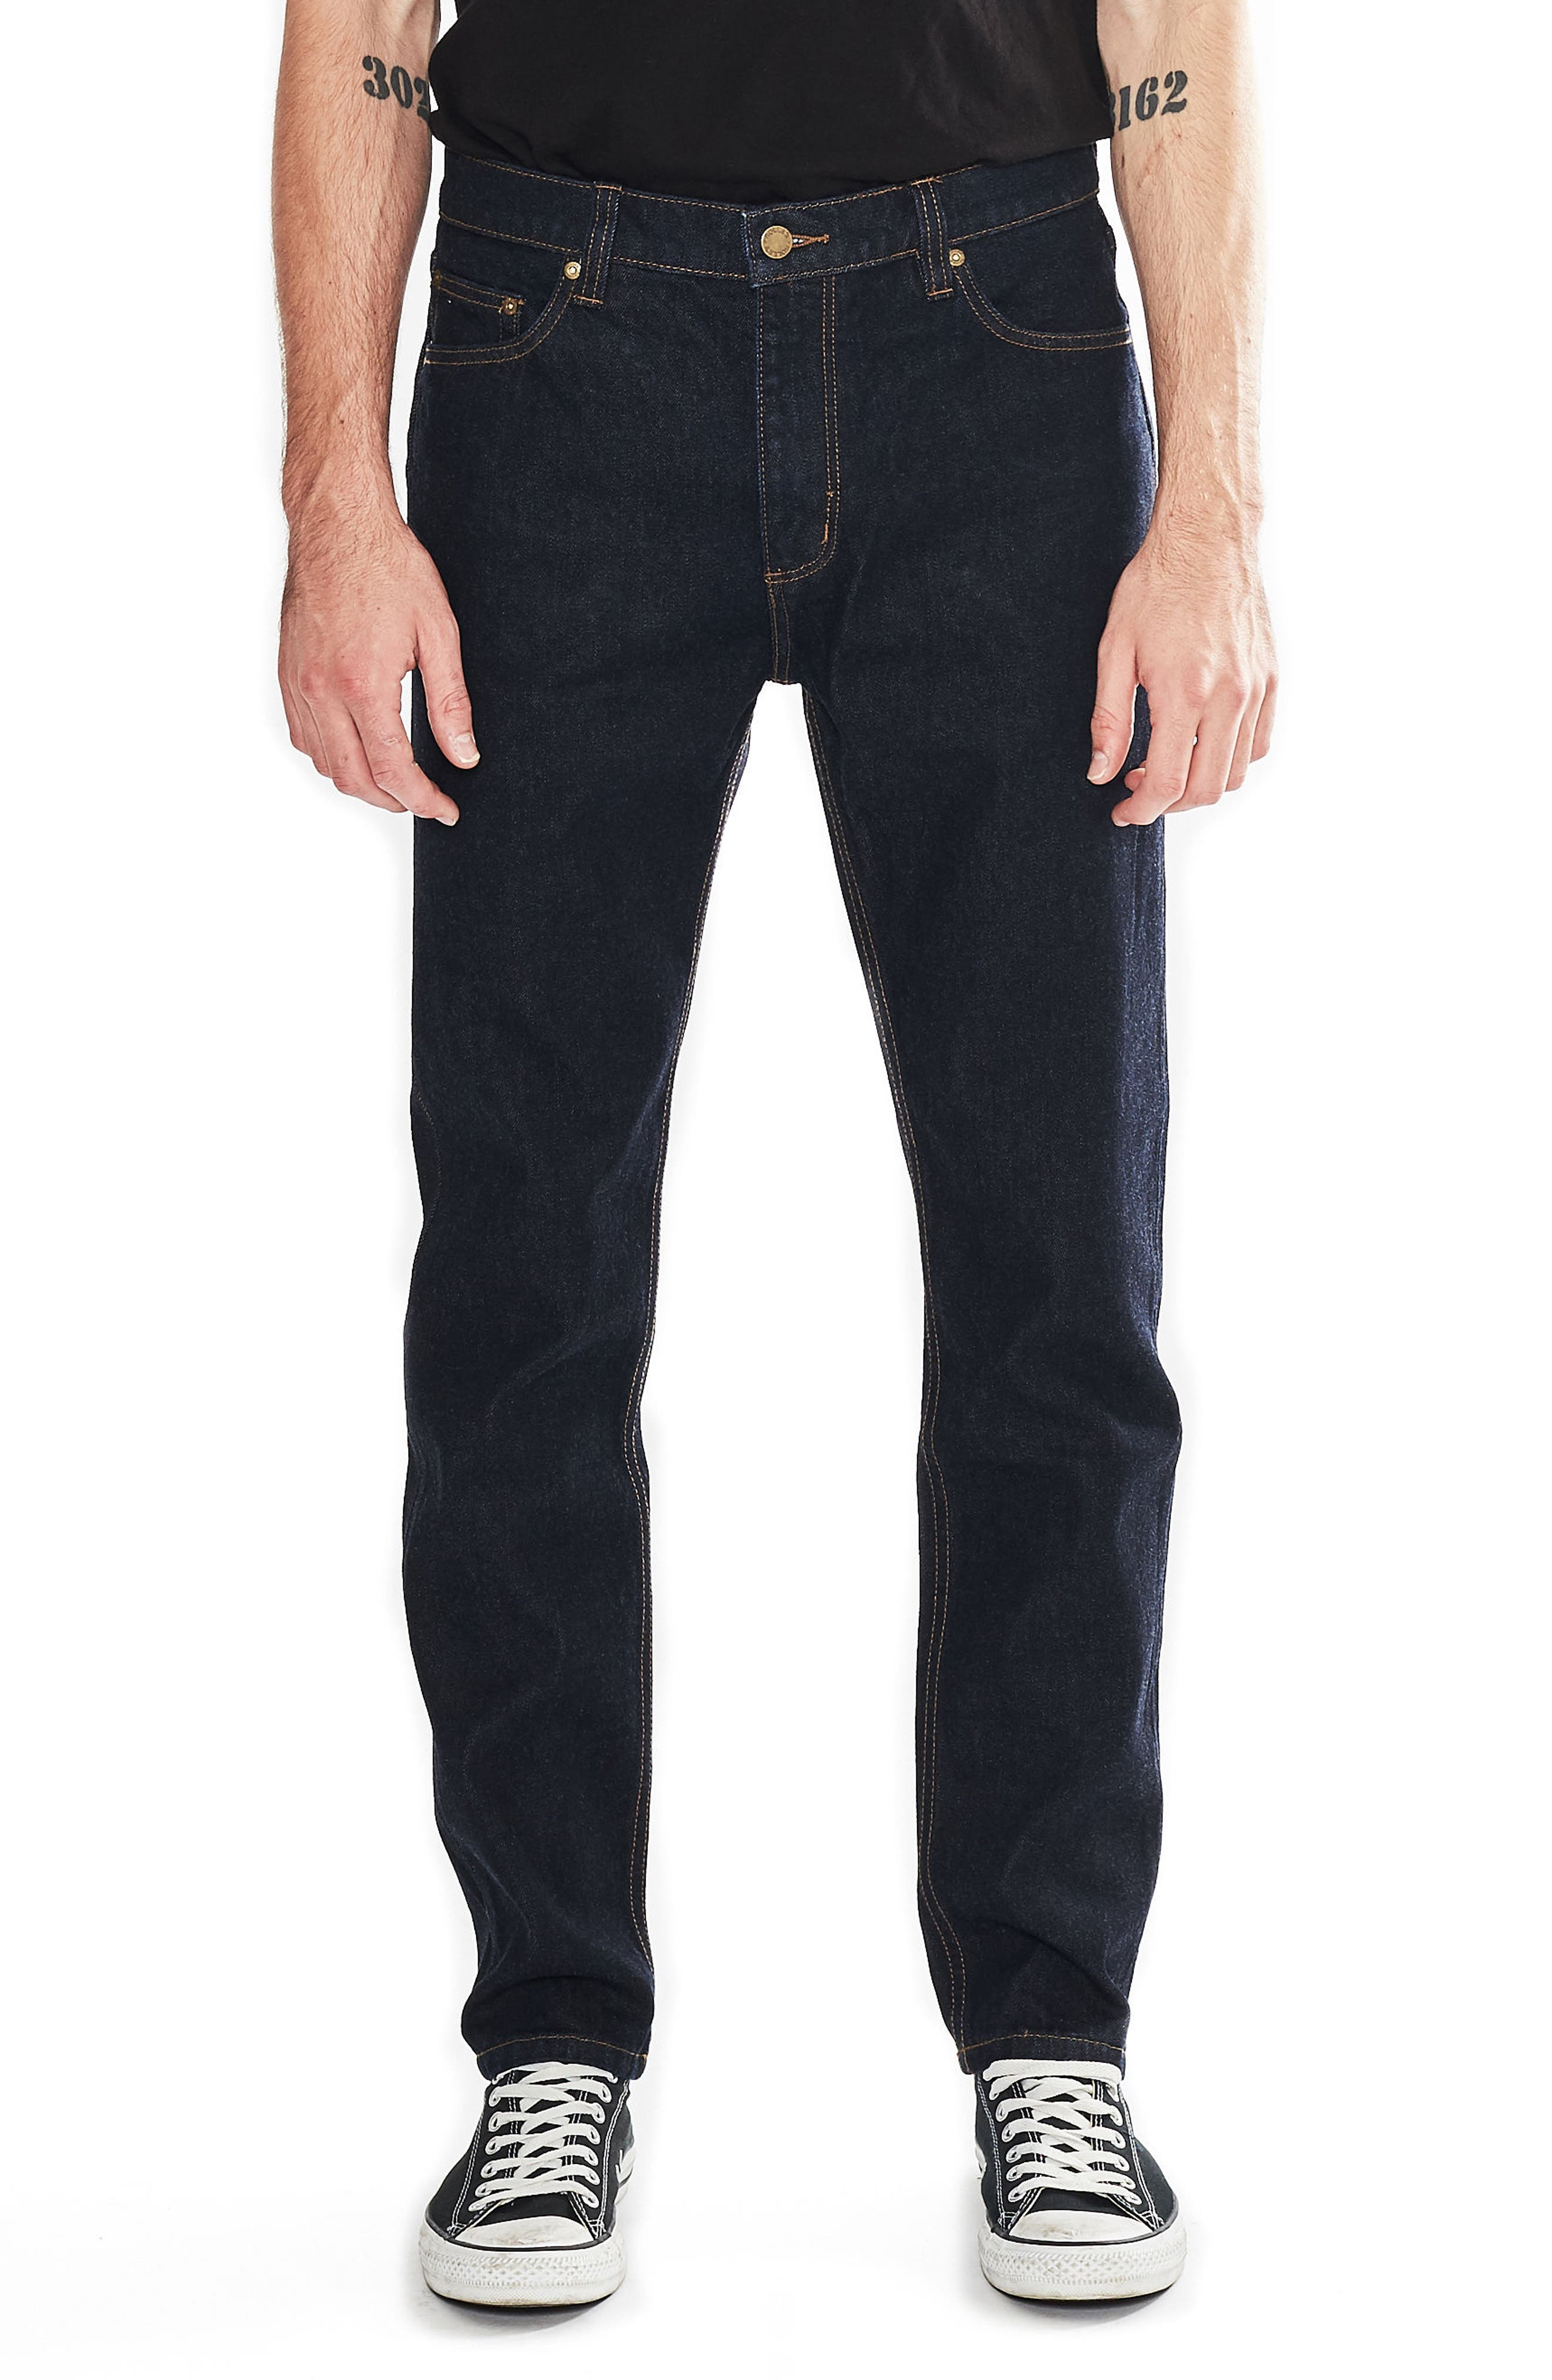 ROLLA'S Tim Slims Slim Fit Jeans (Indigo Raw)